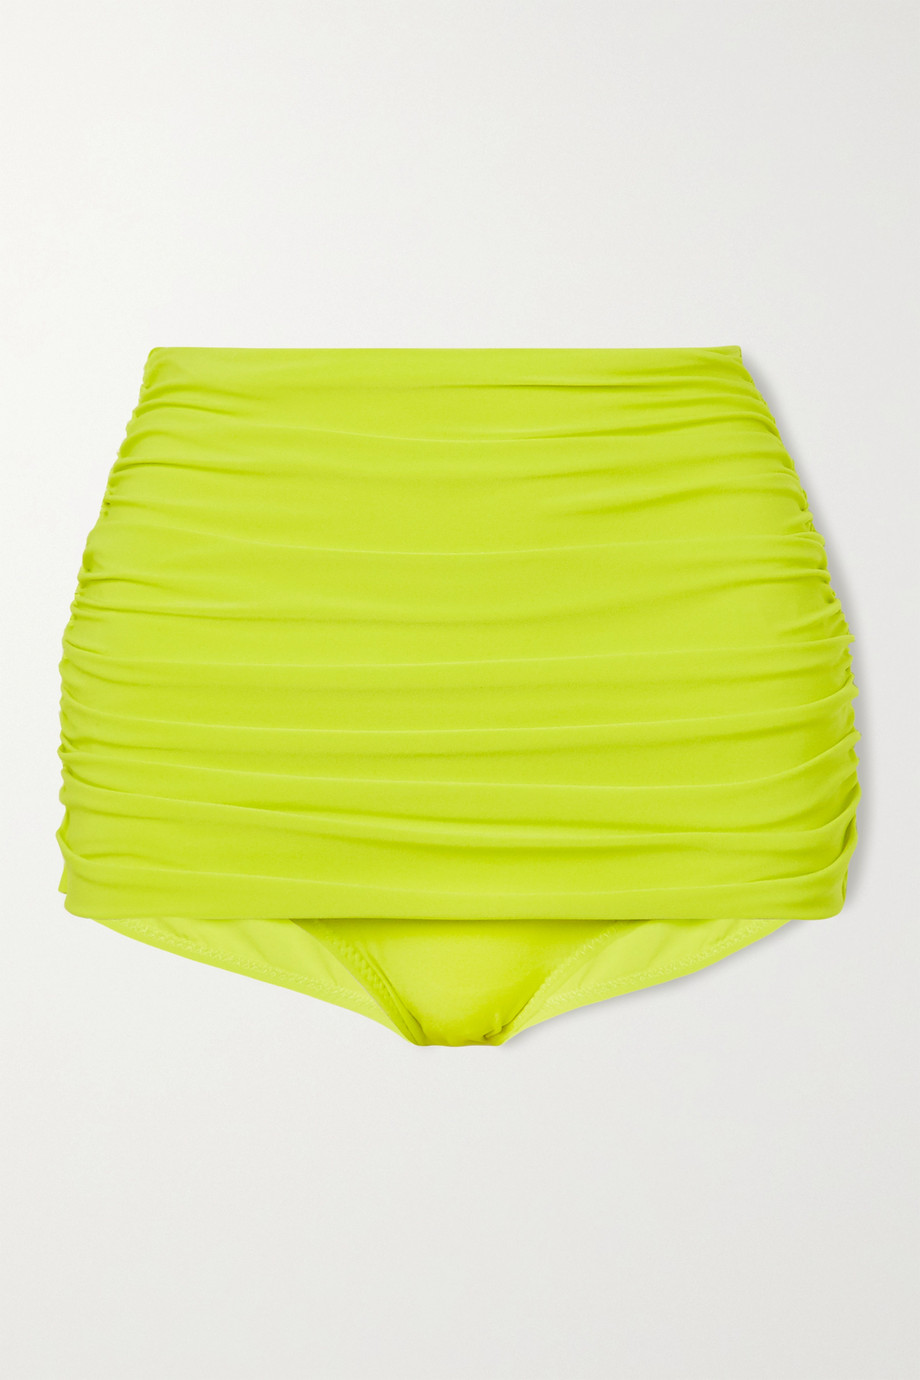 Norma Kamali Bill ruched bikini bottoms